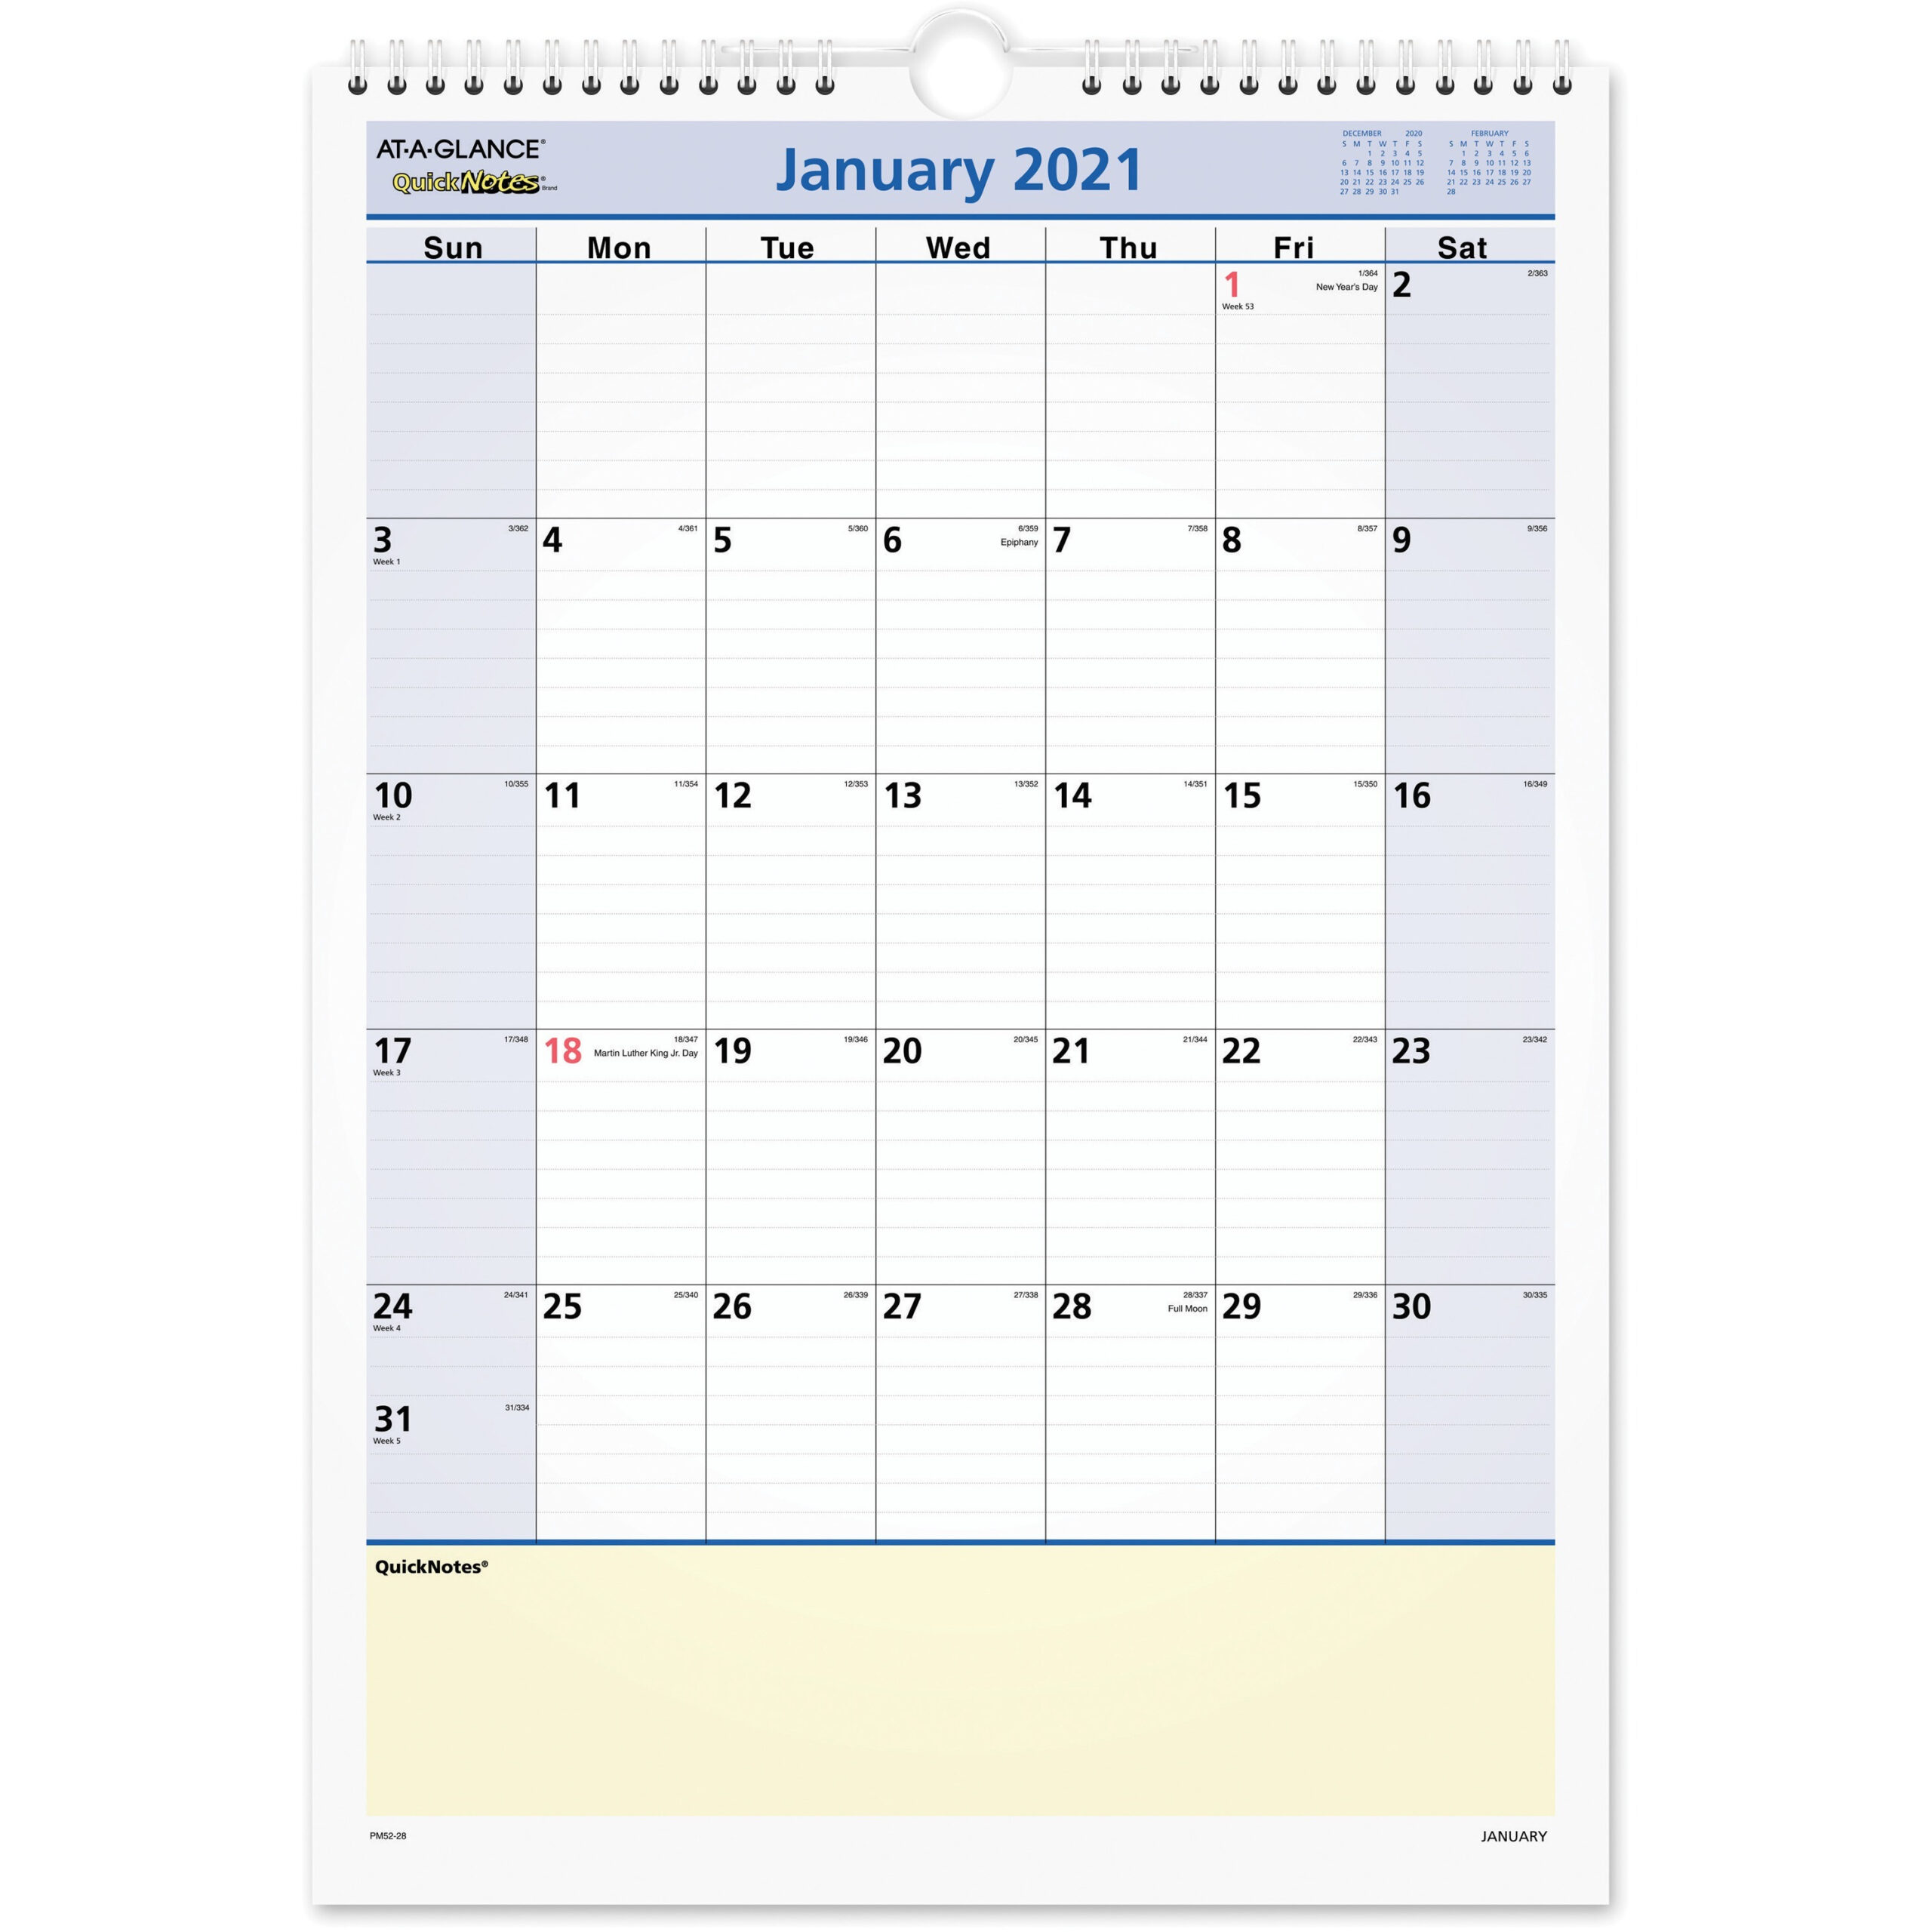 At-A-Glance Quicknotes Monthly Wall Calendar in January 2022 Calendar With Julian Dates